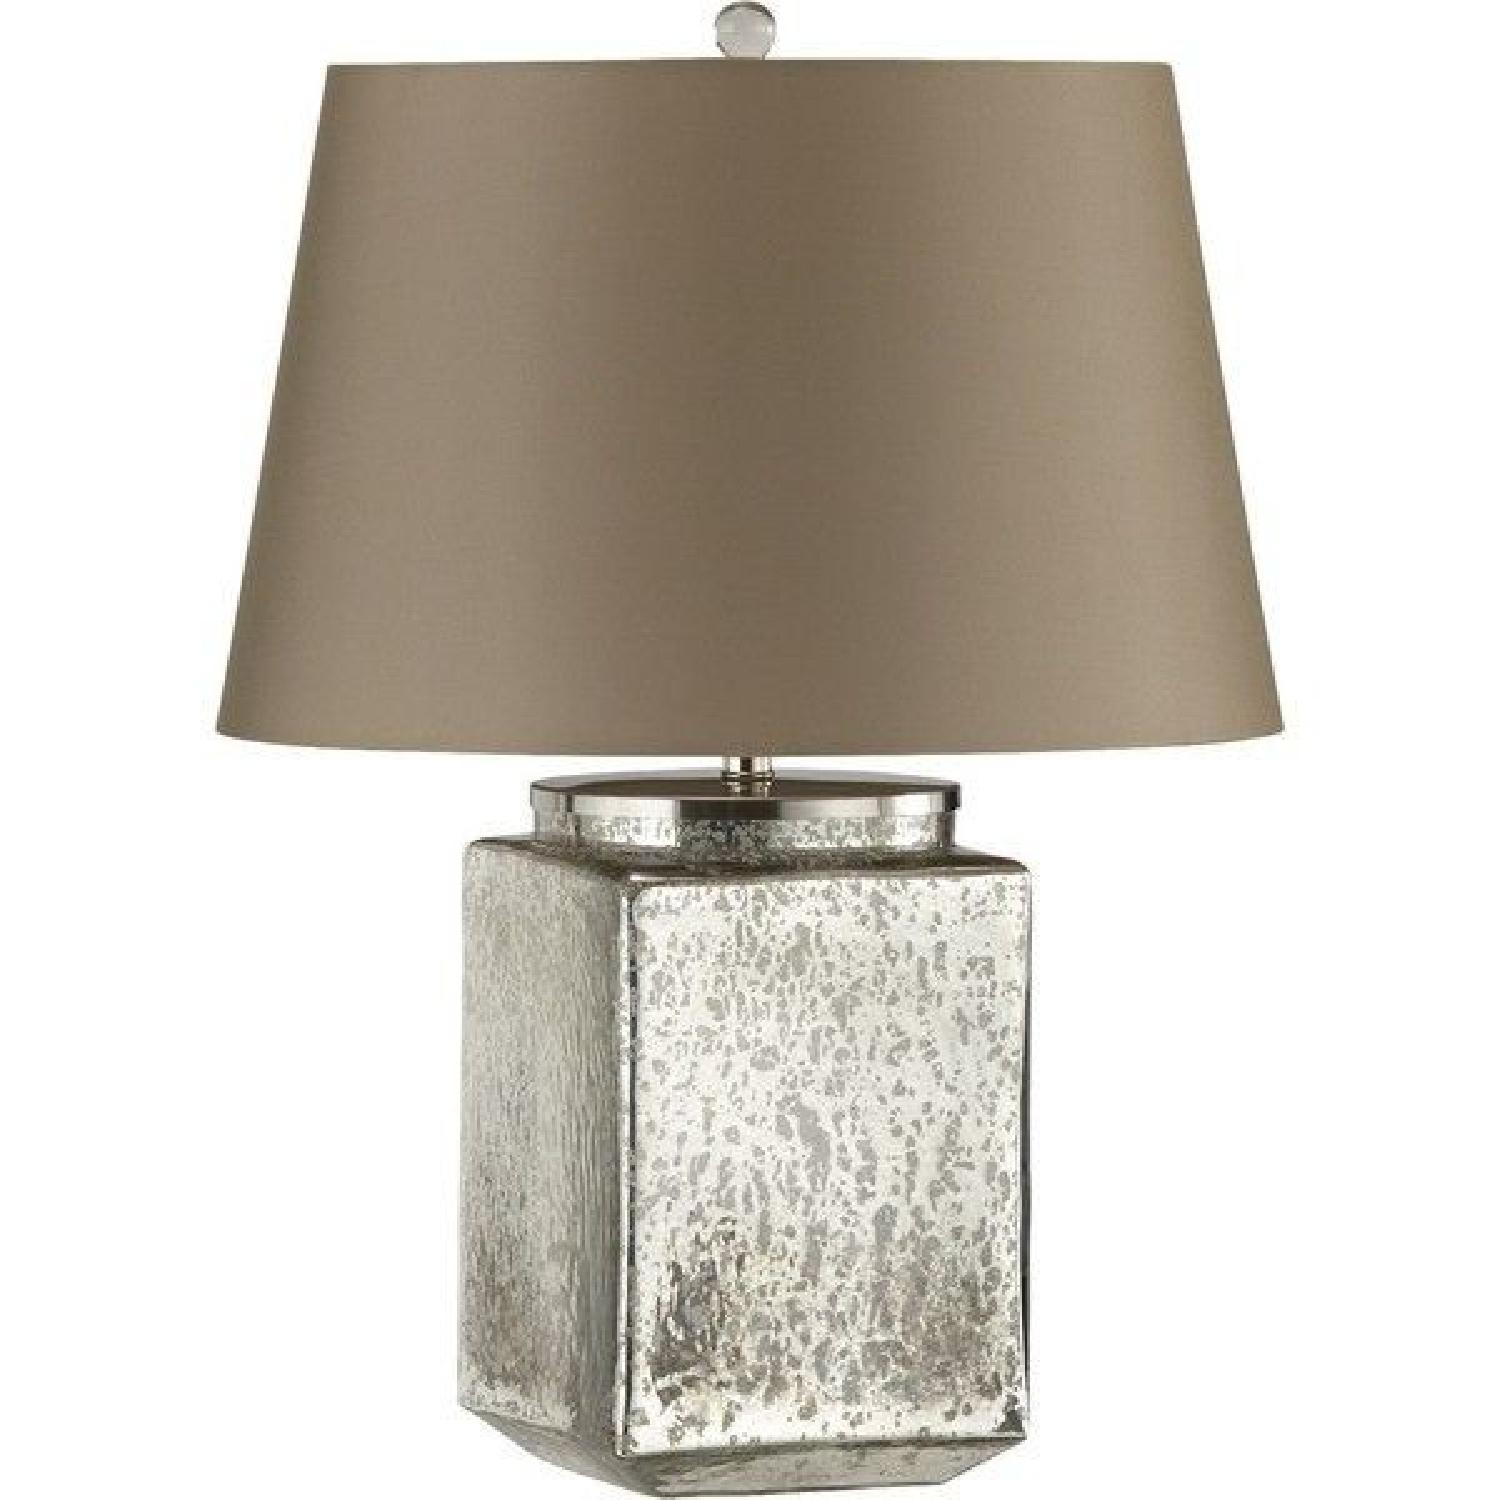 Crate & Barrel Jolie Table Lamp